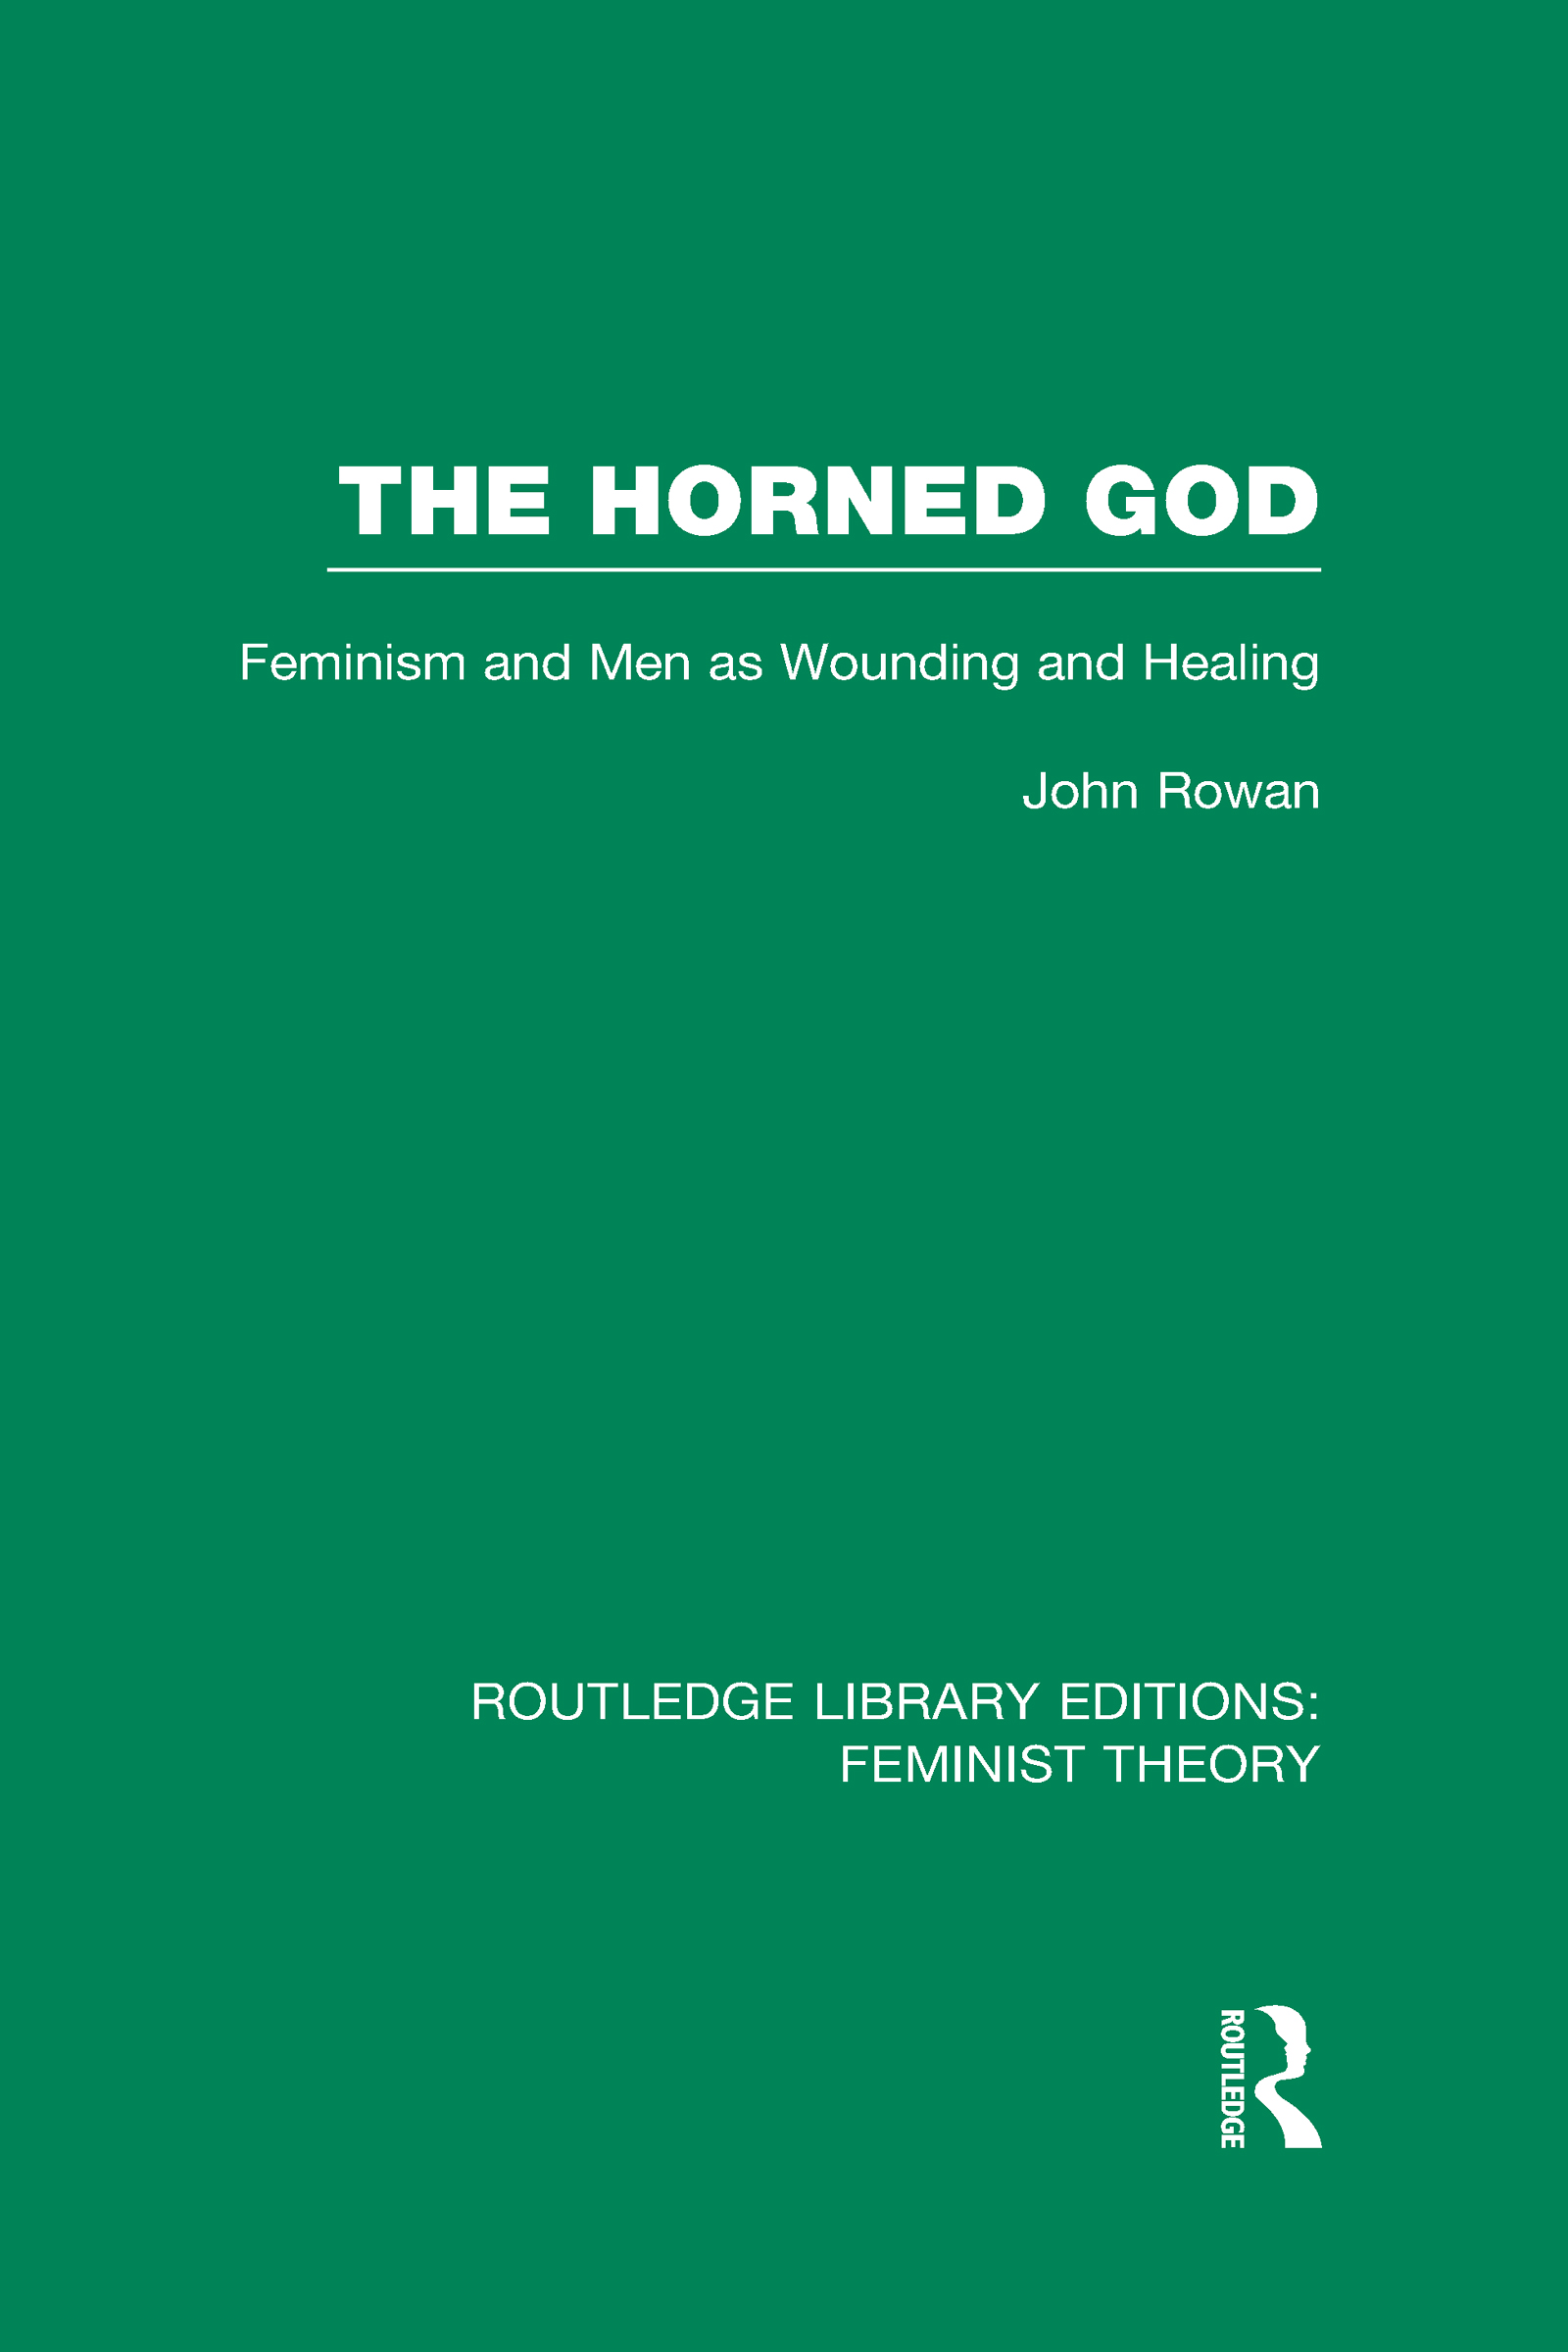 The Horned God (RLE Feminist Theory): Feminism and Men as Wounding and Healing book cover